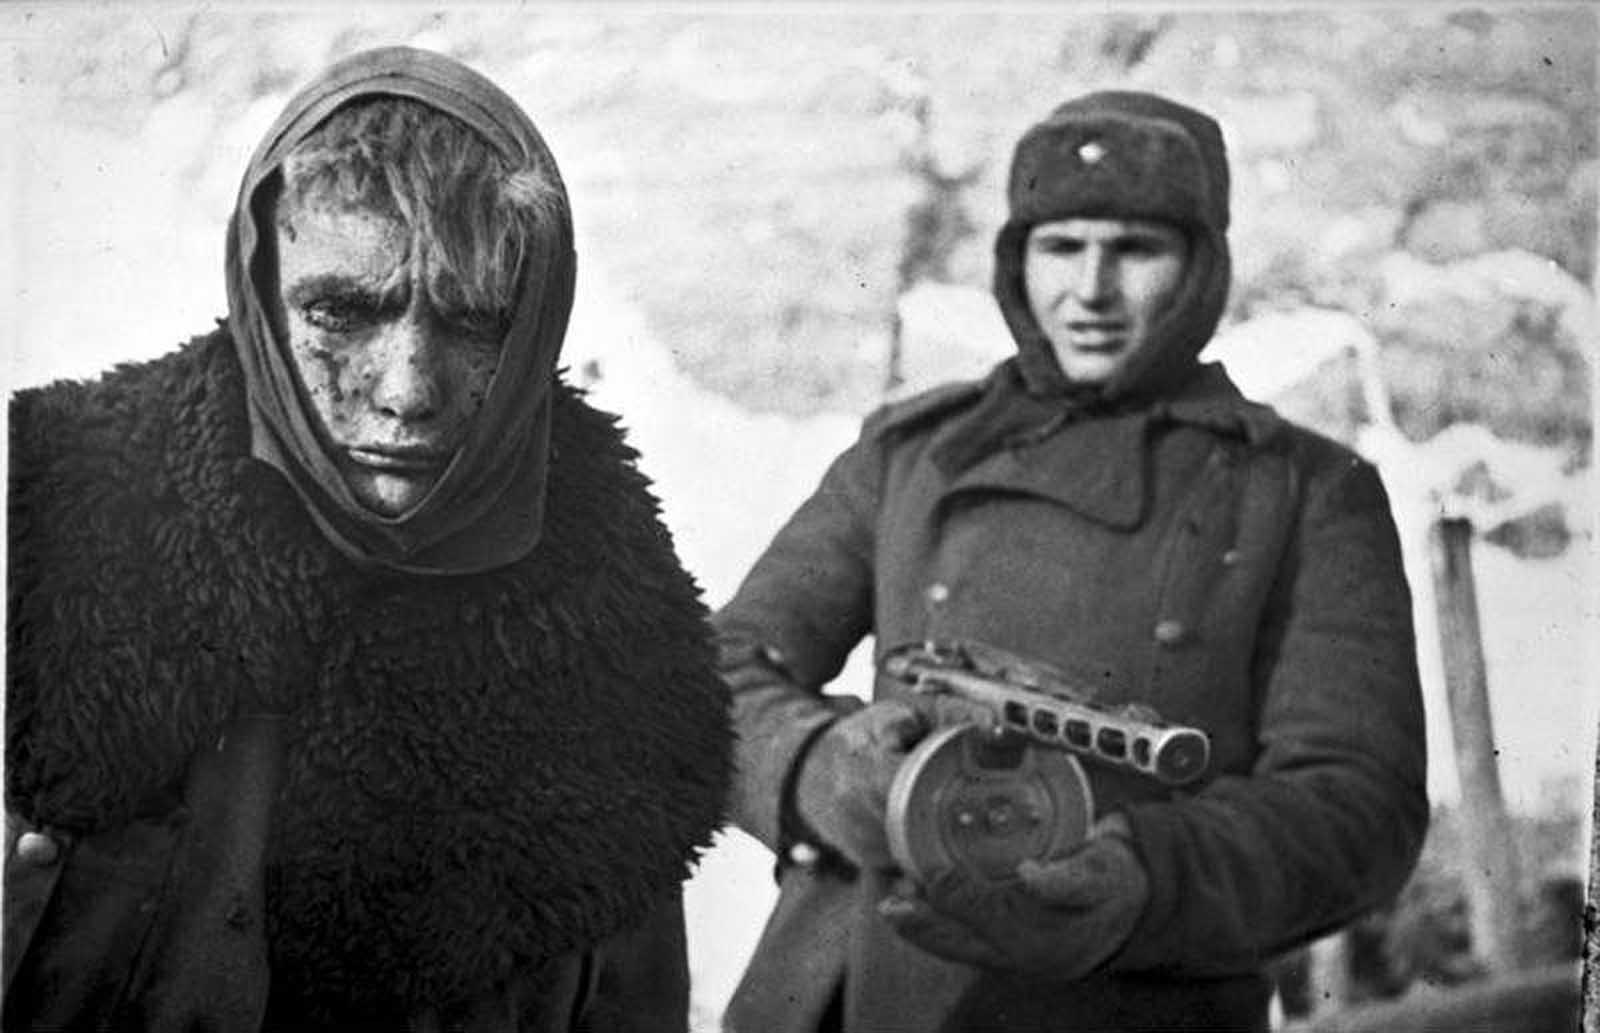 In February of 1943, a Soviet soldier stands guard behind a captured German soldier. Months after being encircled by the Soviets in Stalingrad, the remnants of the German Sixth Army surrendered, after fierce fighting and starvation had already claimed the lives of some 200,000.